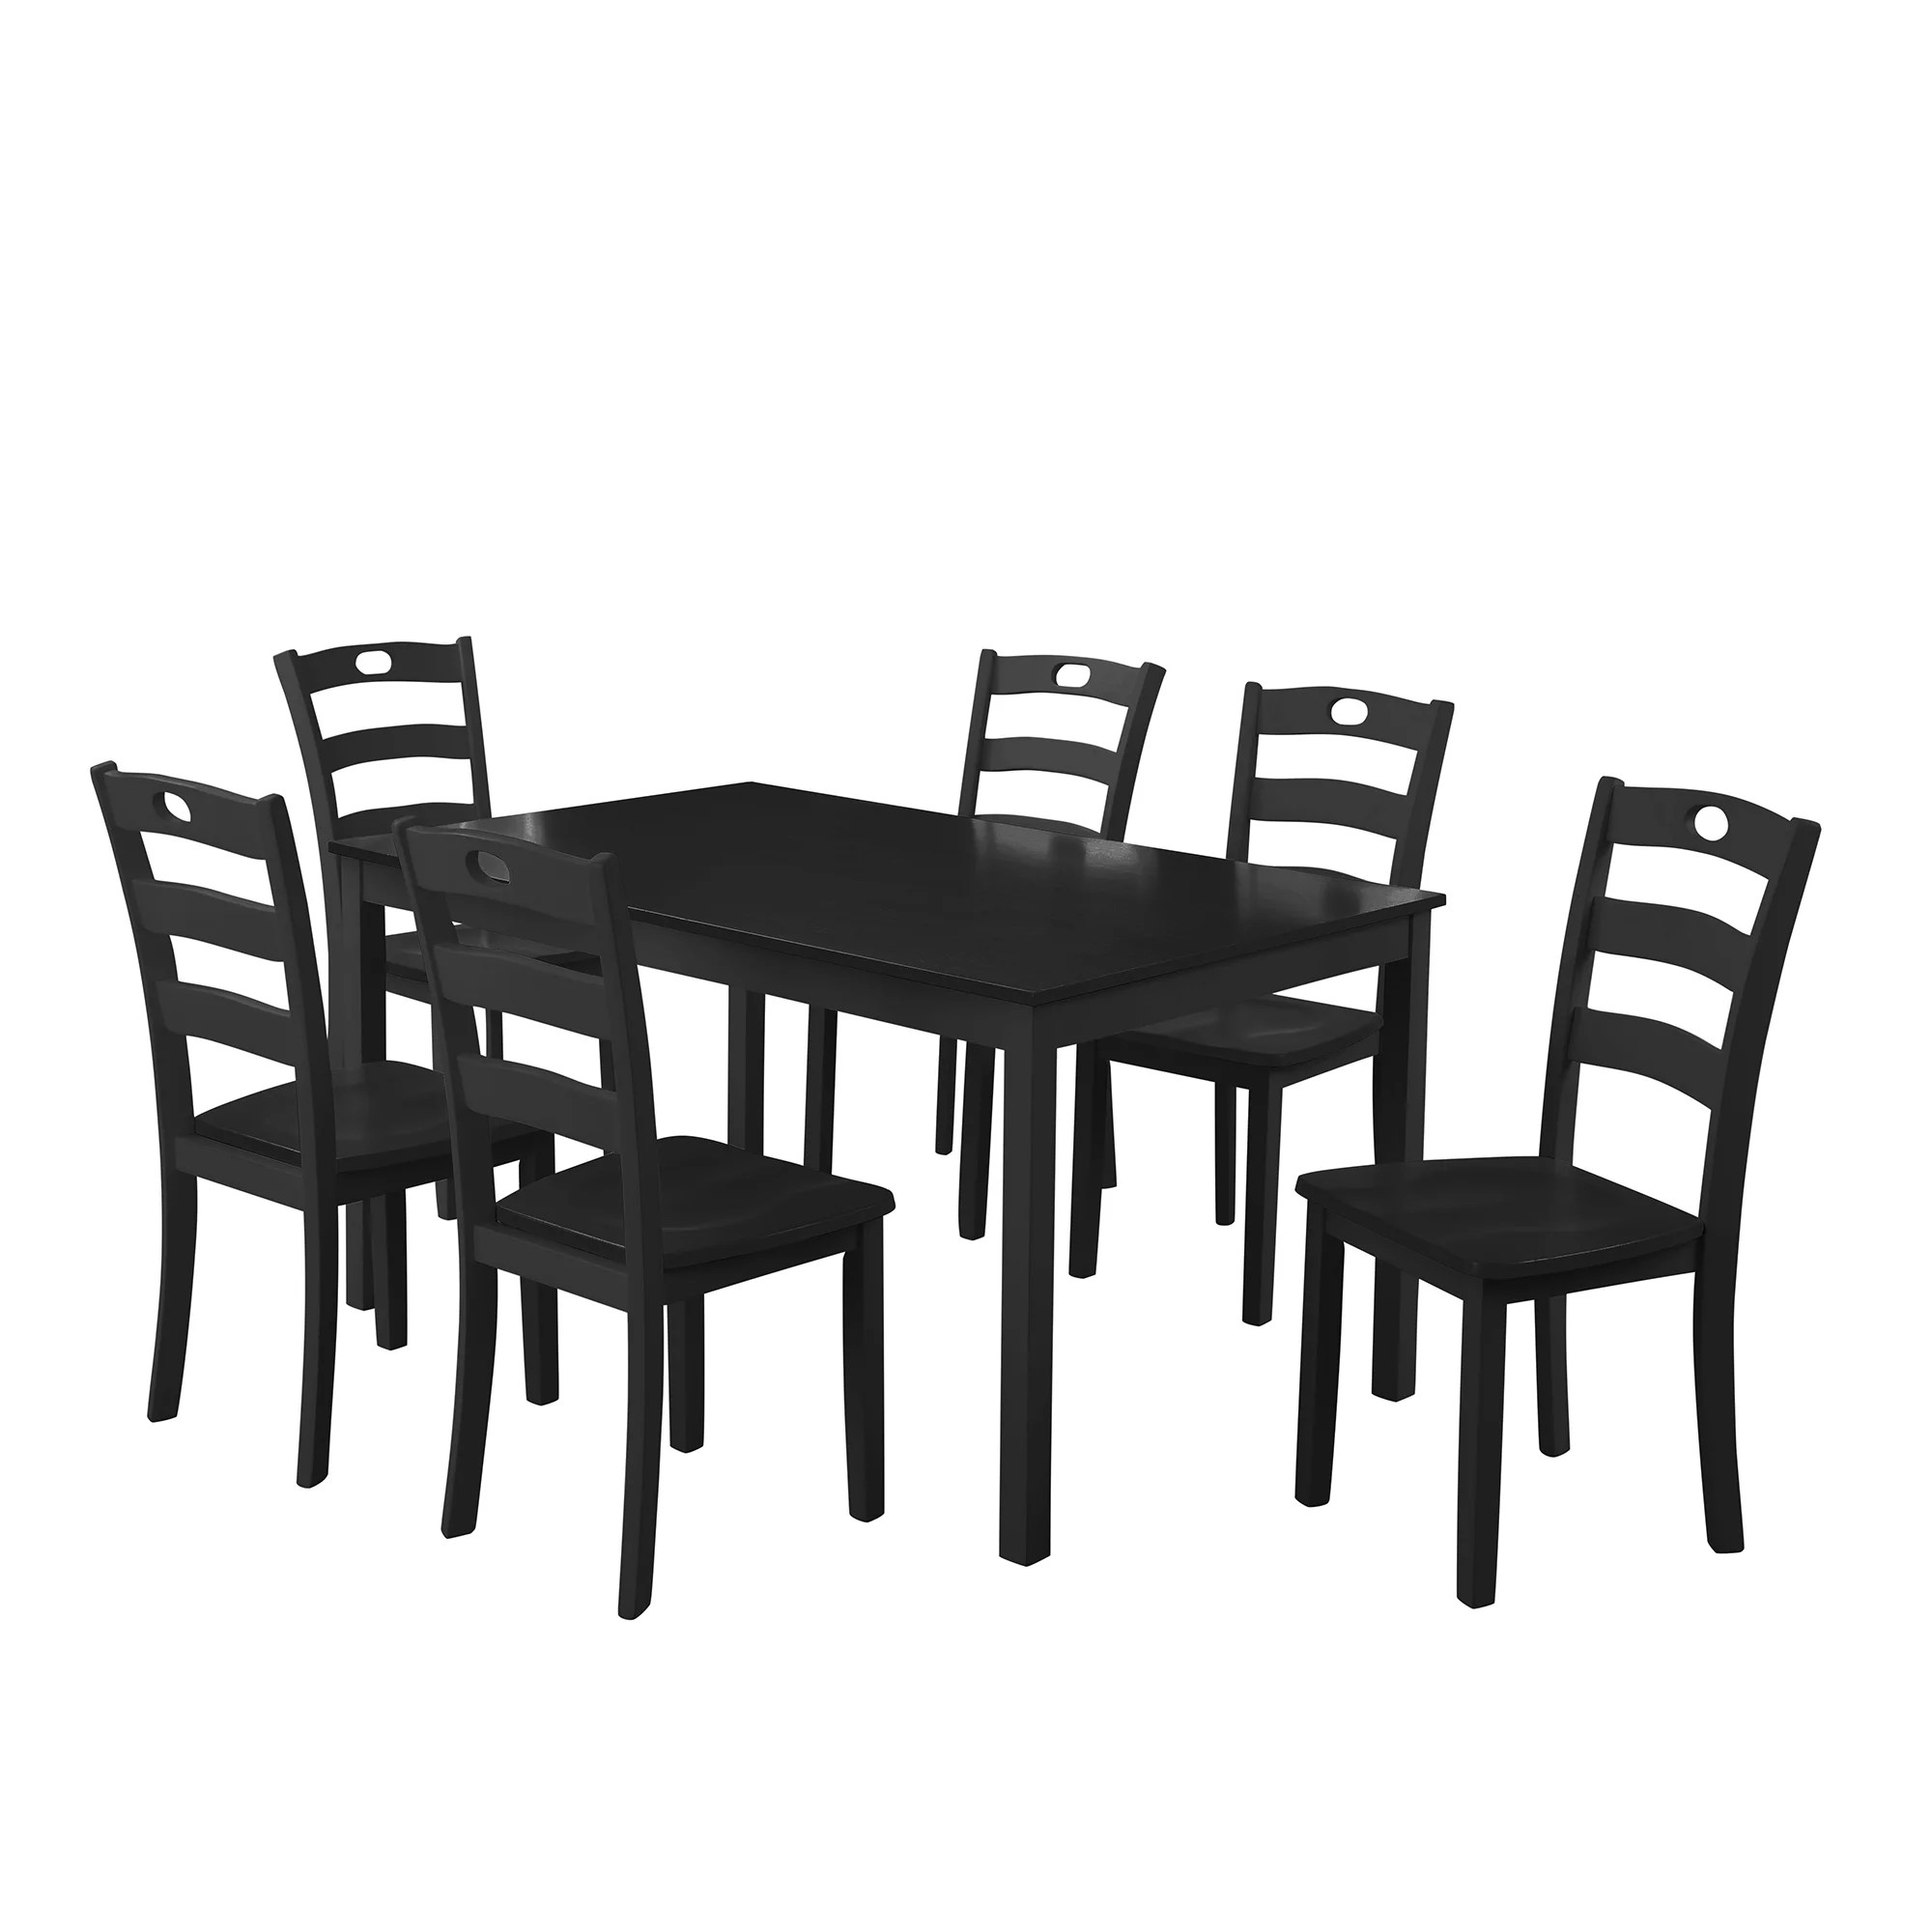 clearance dining table set with 6 chairs 7 piece wooden on dining room sets on clearance id=58661